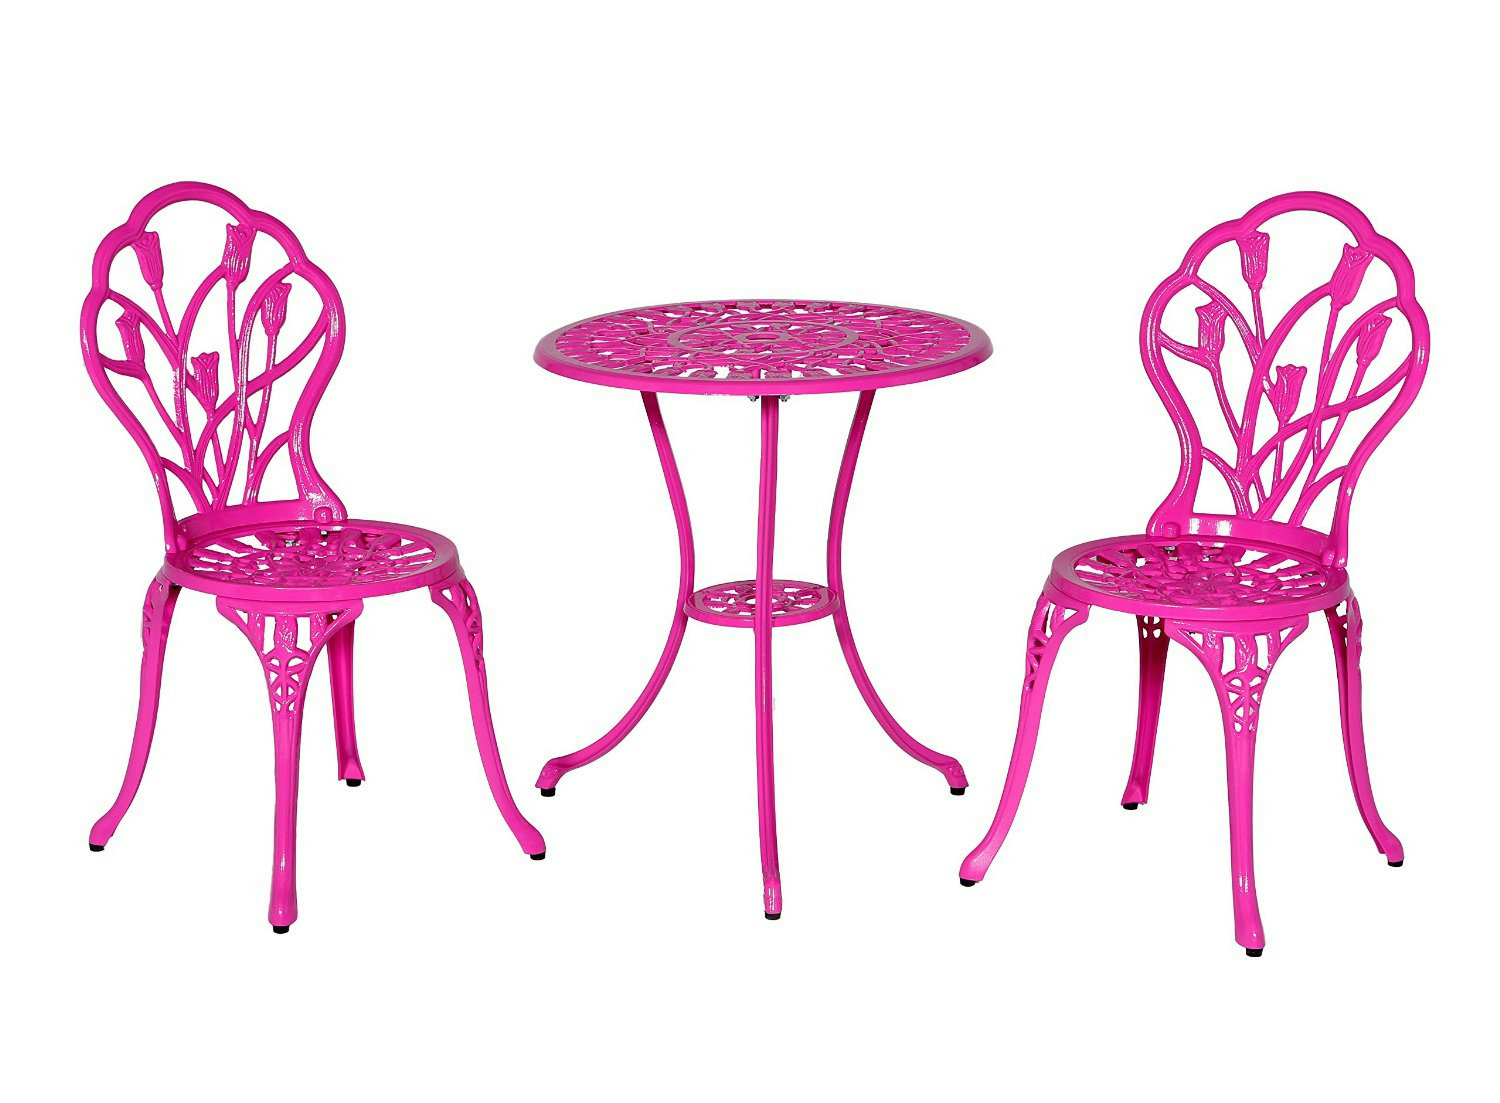 Fine Pink Table And Chair Set Babyadamsjourney Pabps2019 Chair Design Images Pabps2019Com